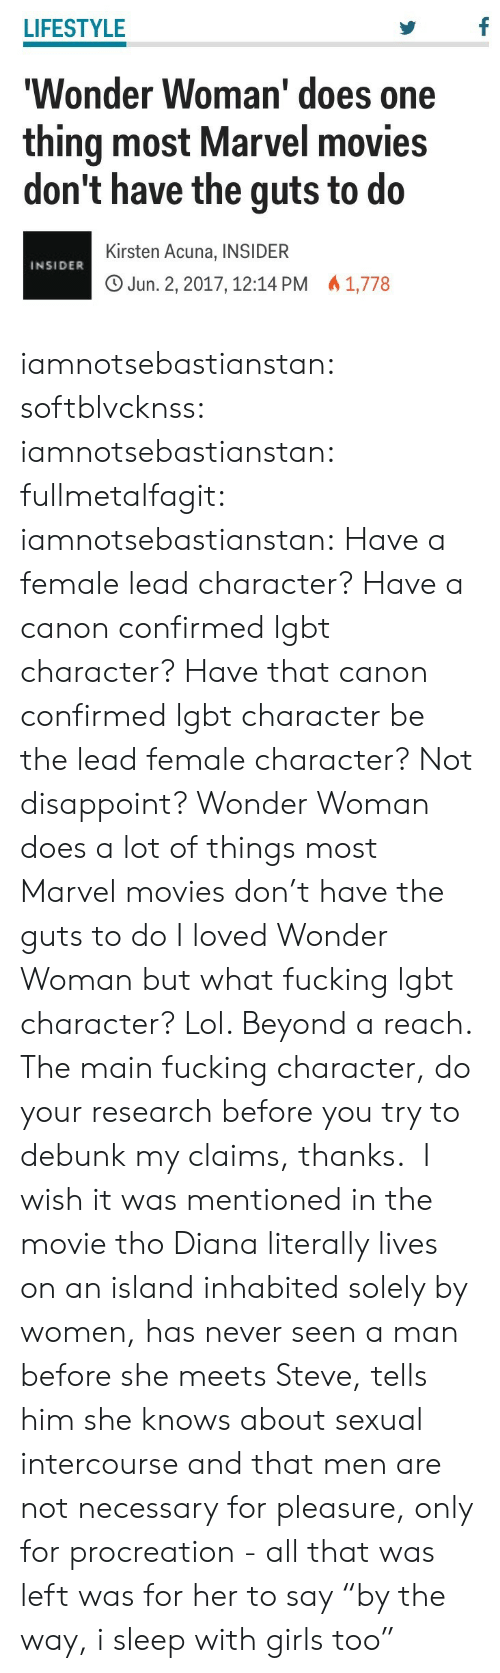 "Fucking, Girls, and Lgbt: LIFESTYLE  Wonder Woman' does one  thing most Marvel movies  don't have the guts to do  Kirsten Acuna, INSIDER  O Jun. 2, 2017, 12:14 PM 1,778  INSIDER iamnotsebastianstan: softblvcknss:   iamnotsebastianstan:   fullmetalfagit:  iamnotsebastianstan:  Have a female lead character? Have a canon confirmed lgbt character? Have that canon confirmed lgbt character be the lead female character? Not disappoint? Wonder Woman does a lot of things most Marvel movies don't have the guts to do  I loved Wonder Woman but what fucking lgbt character? Lol. Beyond a reach.   The main fucking character, do your research before you try to debunk my claims, thanks.    I wish it was mentioned in the movie tho   Diana literally lives on an island inhabited solely by women, has never seen a man before she meets Steve, tells him she knows about sexual intercourse and that men are not necessary for pleasure, only for procreation - all that was left was for her to say ""by the way, i sleep with girls too"""